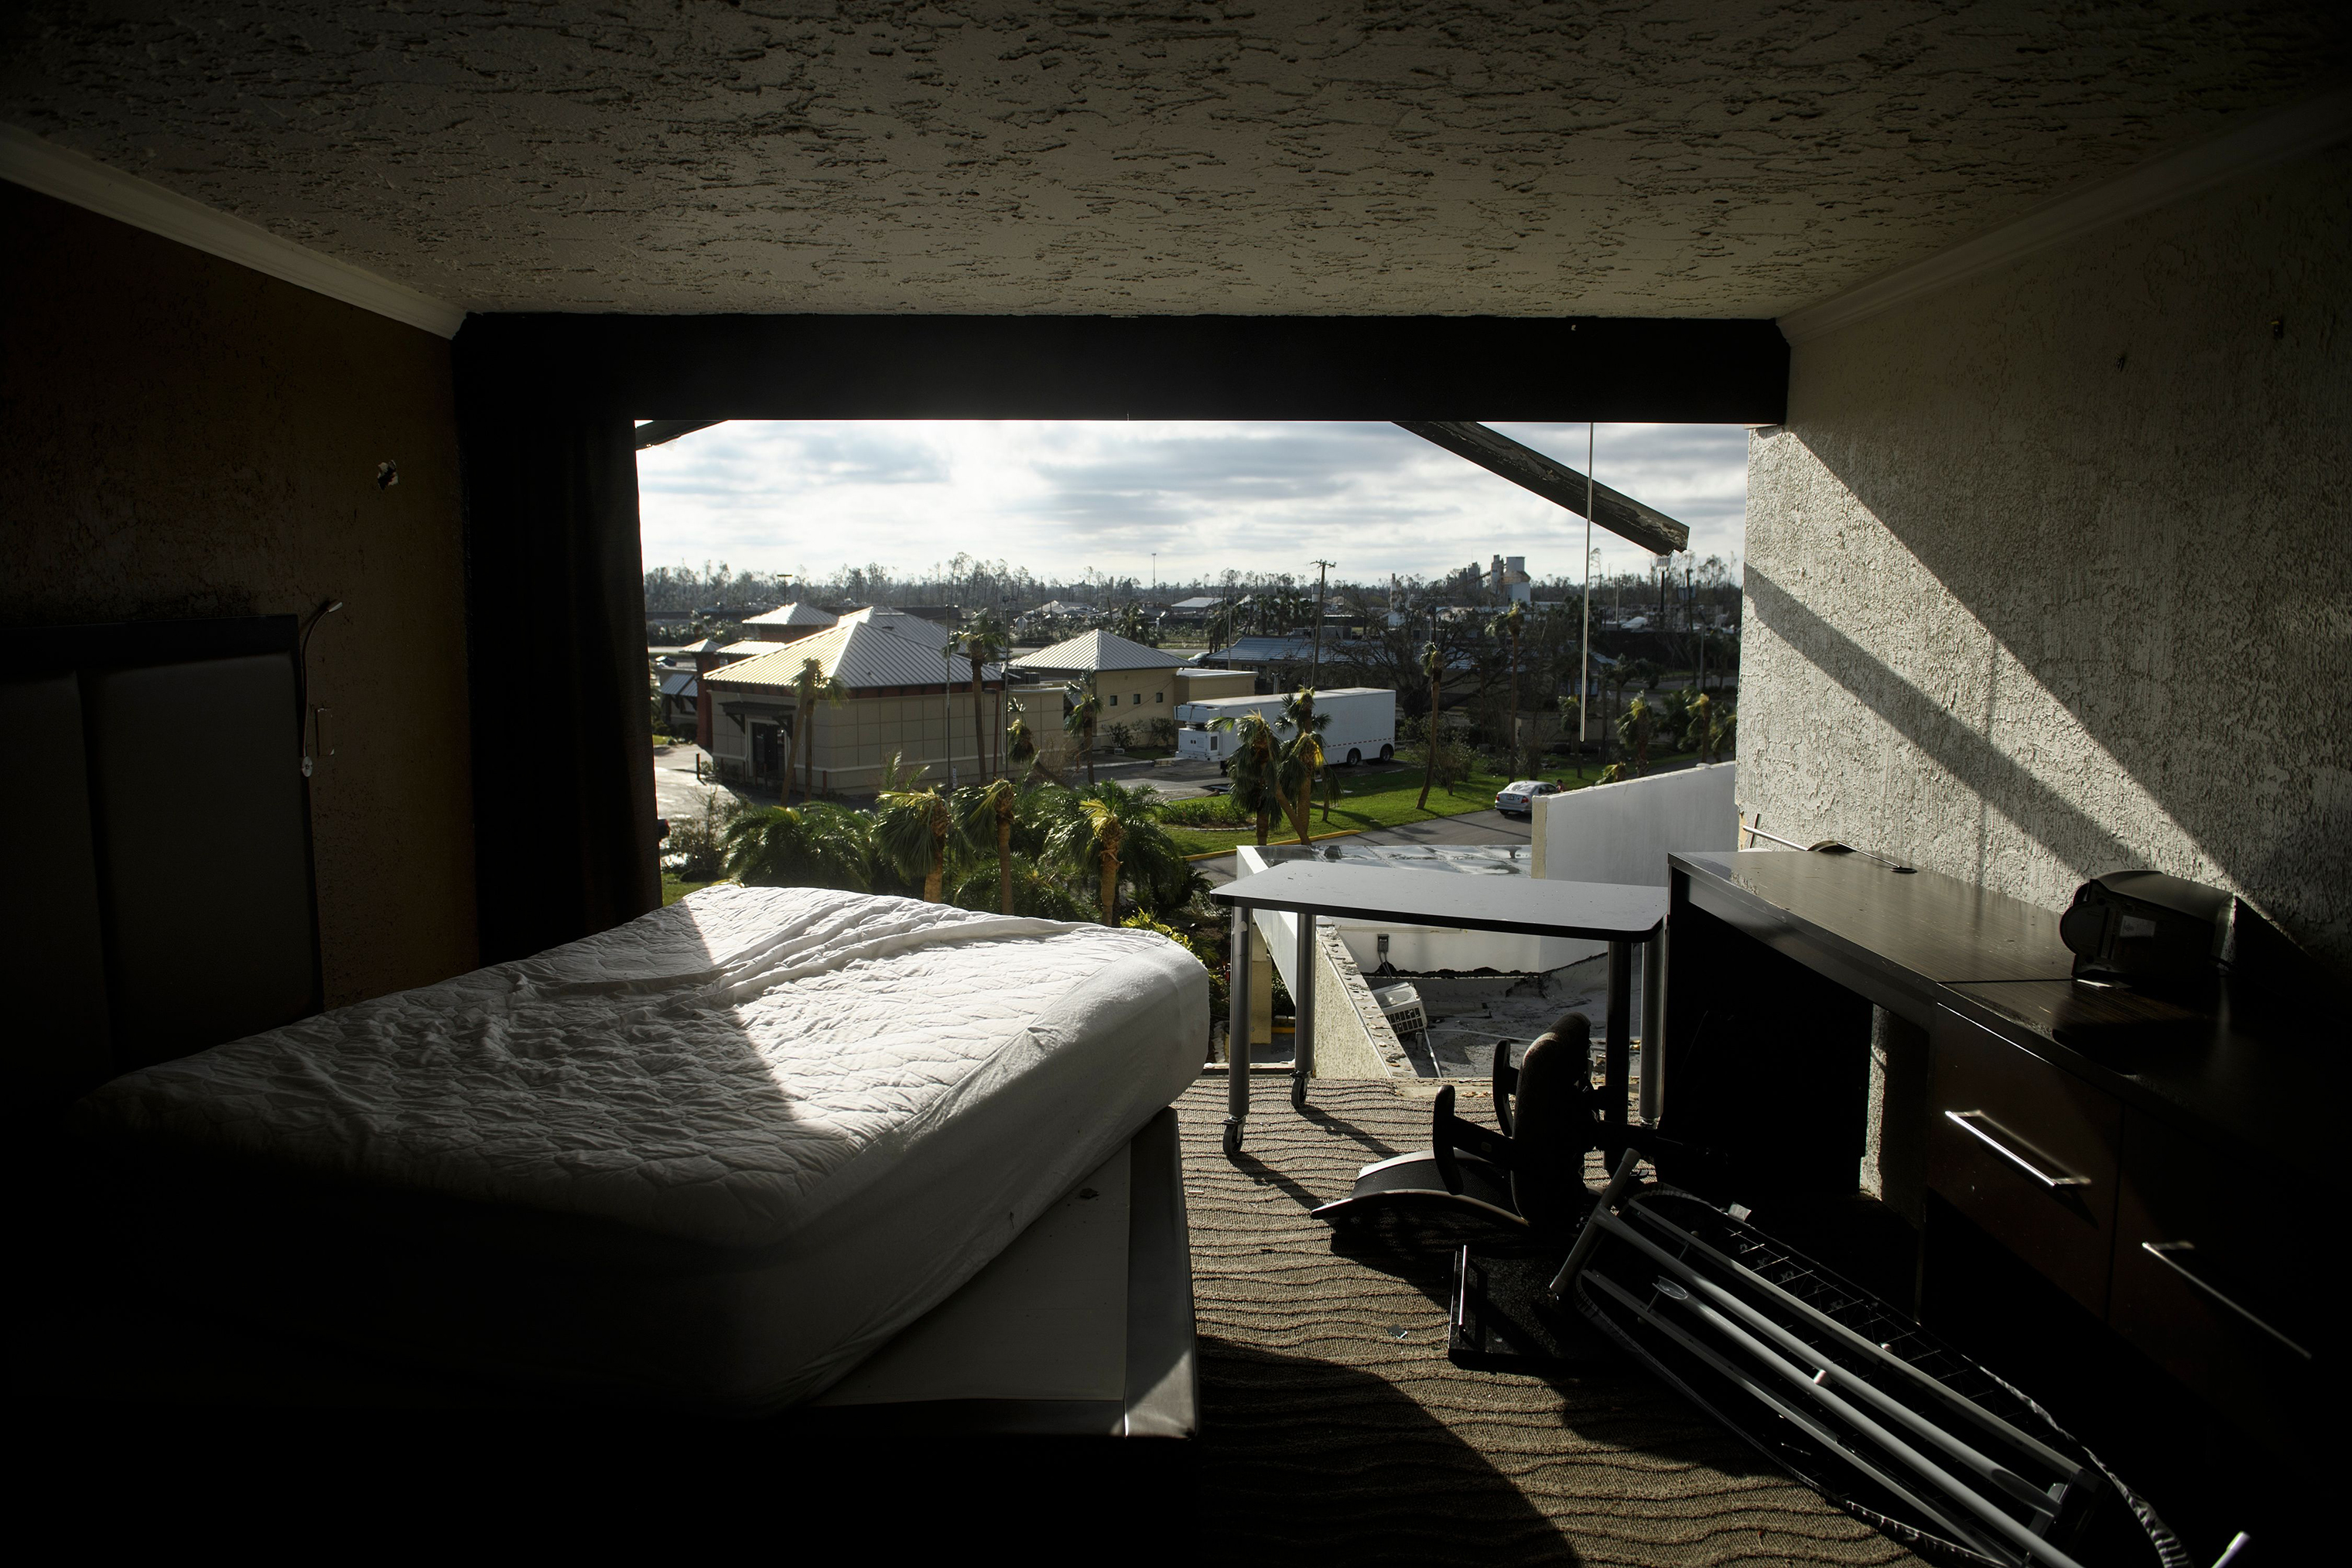 A view of a hotel room with a collapsed wall in the aftermath of Hurricane Michael on Oct. 11, 2018 in Panama City, Fla.